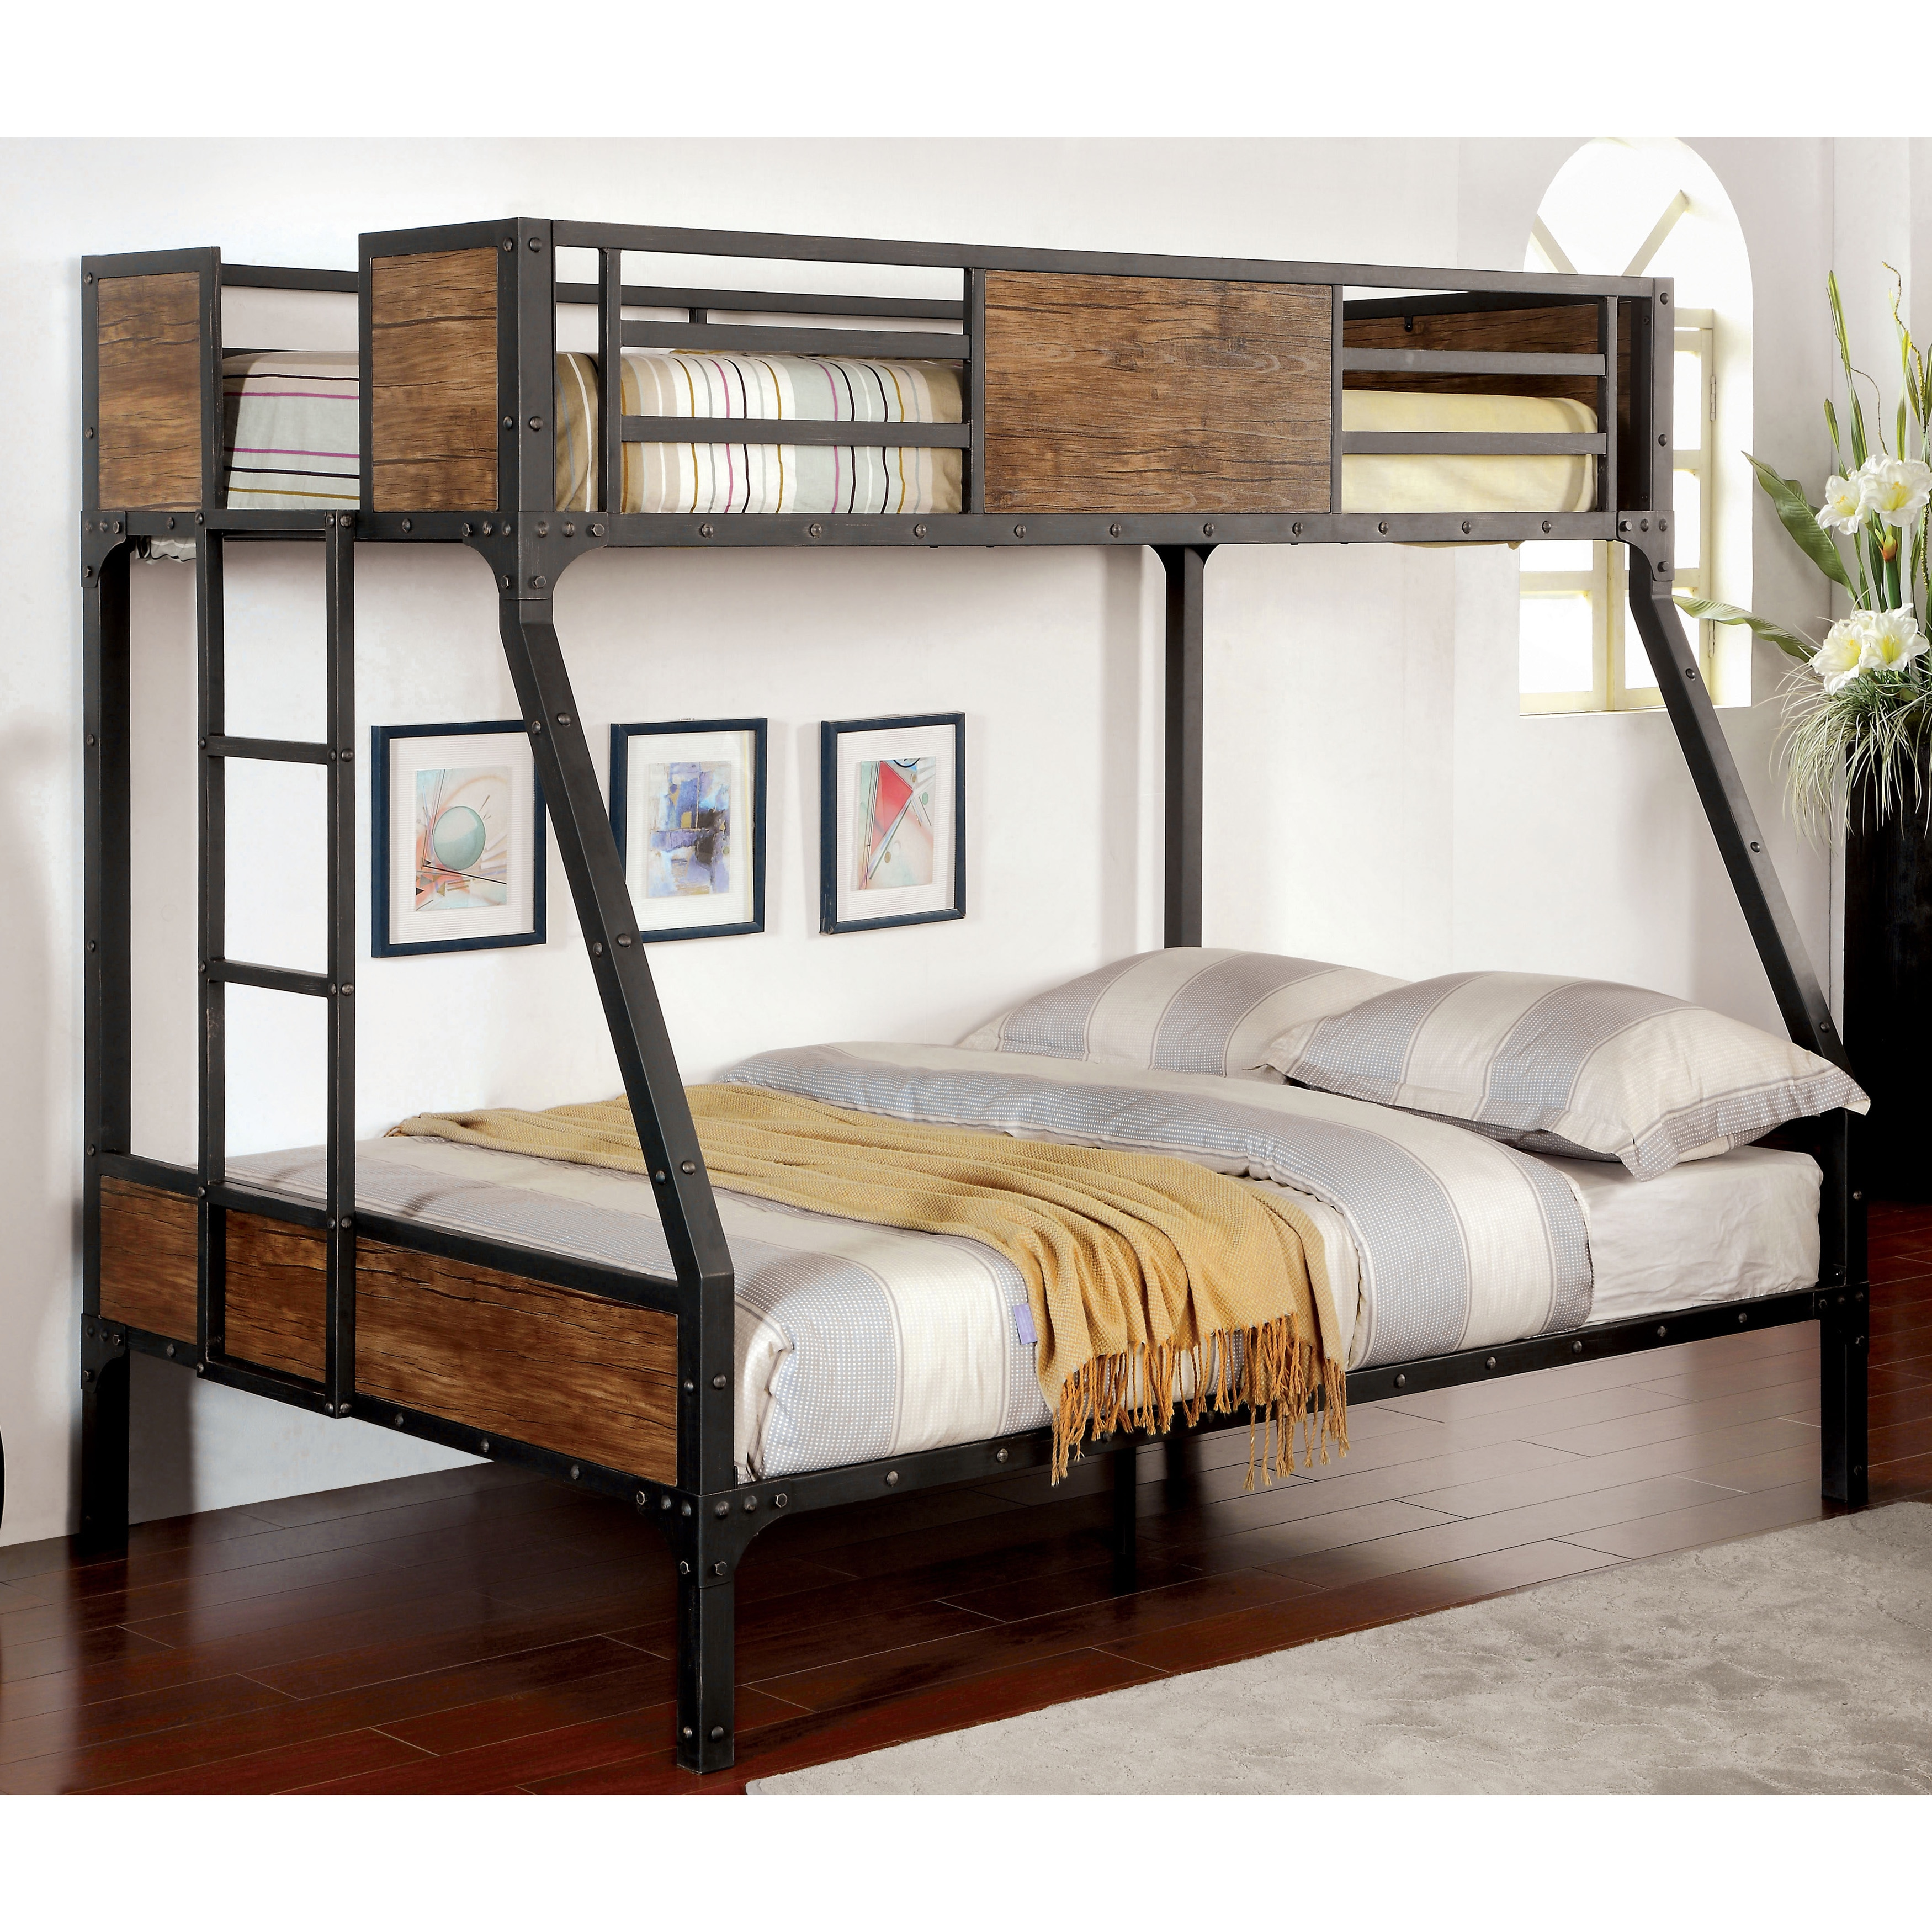 Furniture of America Markain Industrial Metal Bunk Bed - Free Shipping  Today - Overstock.com - 18147238